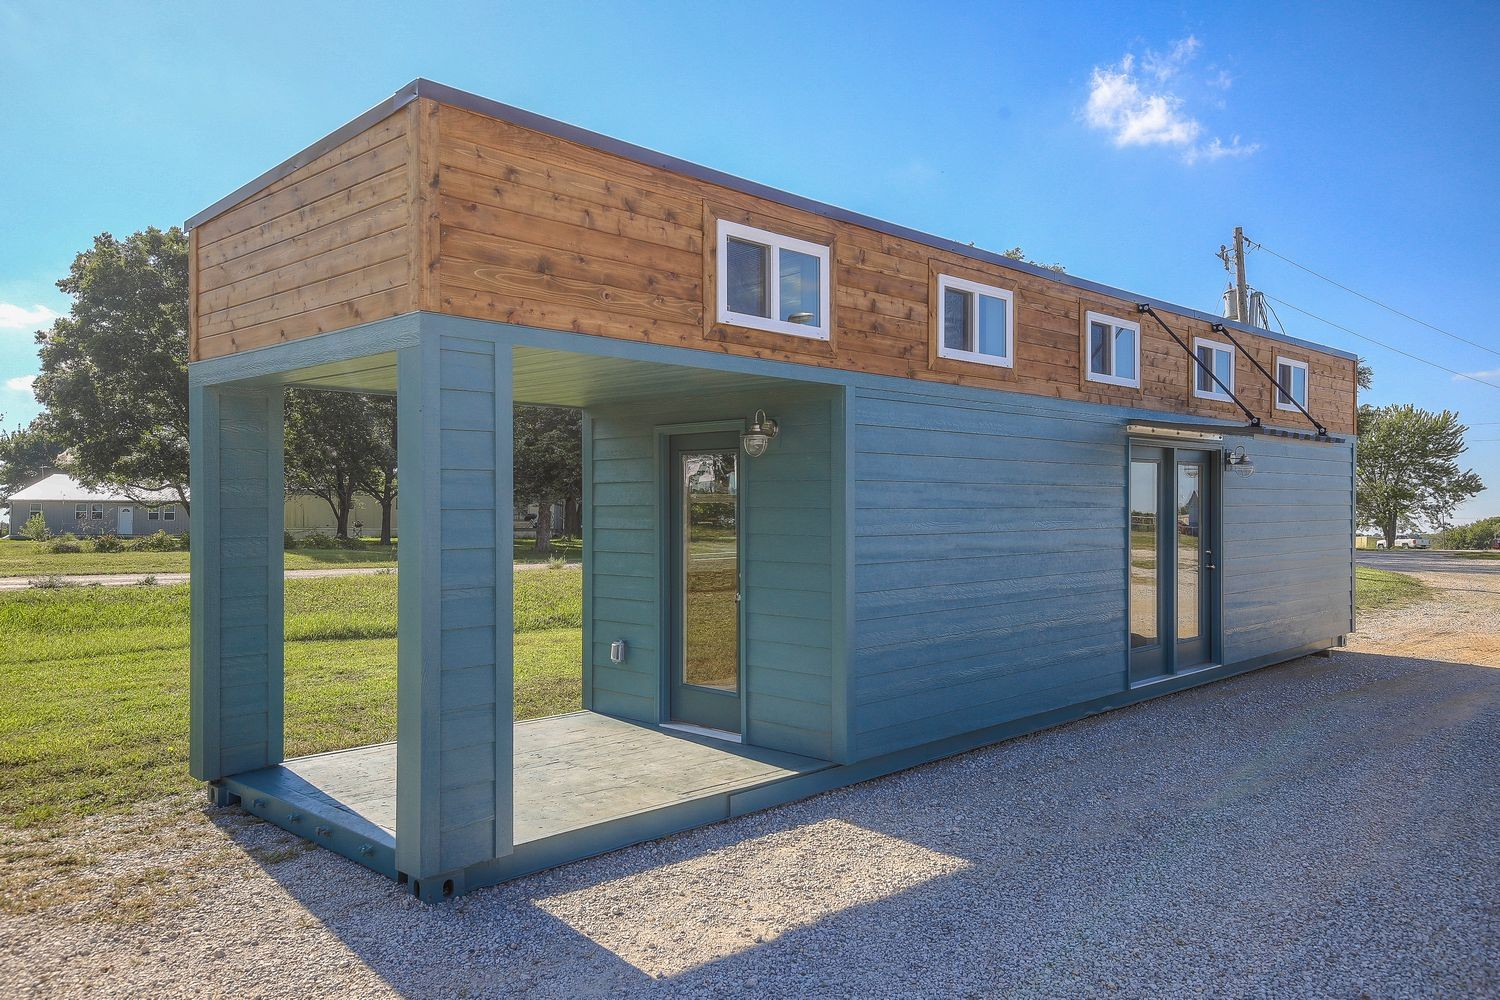 House Containers 5 shipping container homes you can order right now - curbed